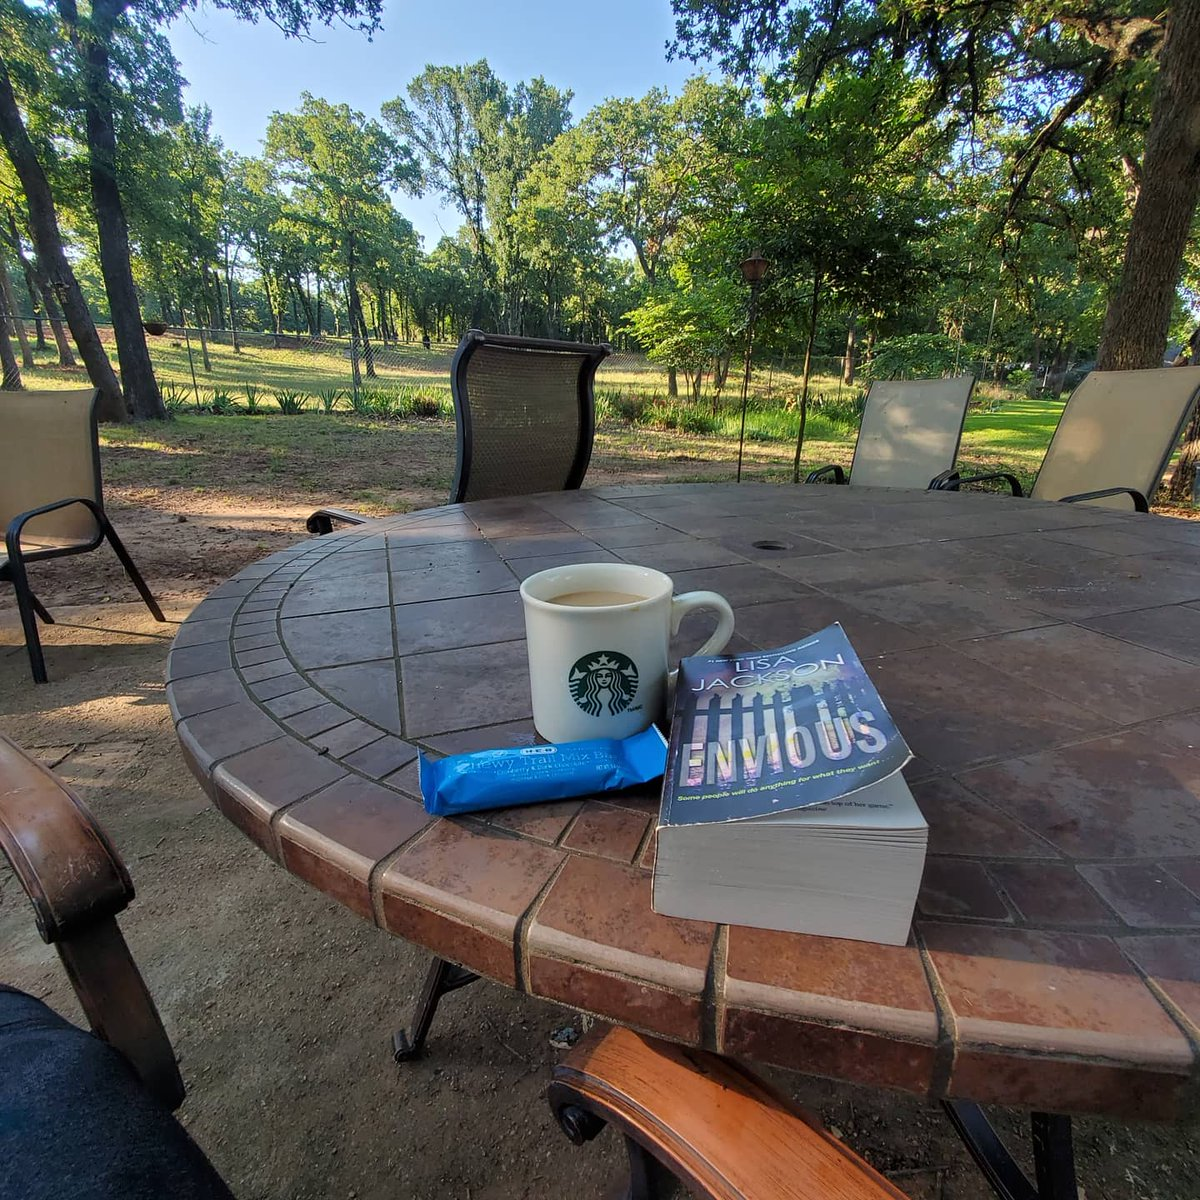 Early mornings with coffee, a good book and the view the ranch afford me get me ready to make others lives amazing.  Book your massage at Balm & Fizz on the ranch to get your breath of relaxation.  #massagetherapylife #bookmassage #relaxation  #ranchlife pic.twitter.com/9VDiiJ1yIO